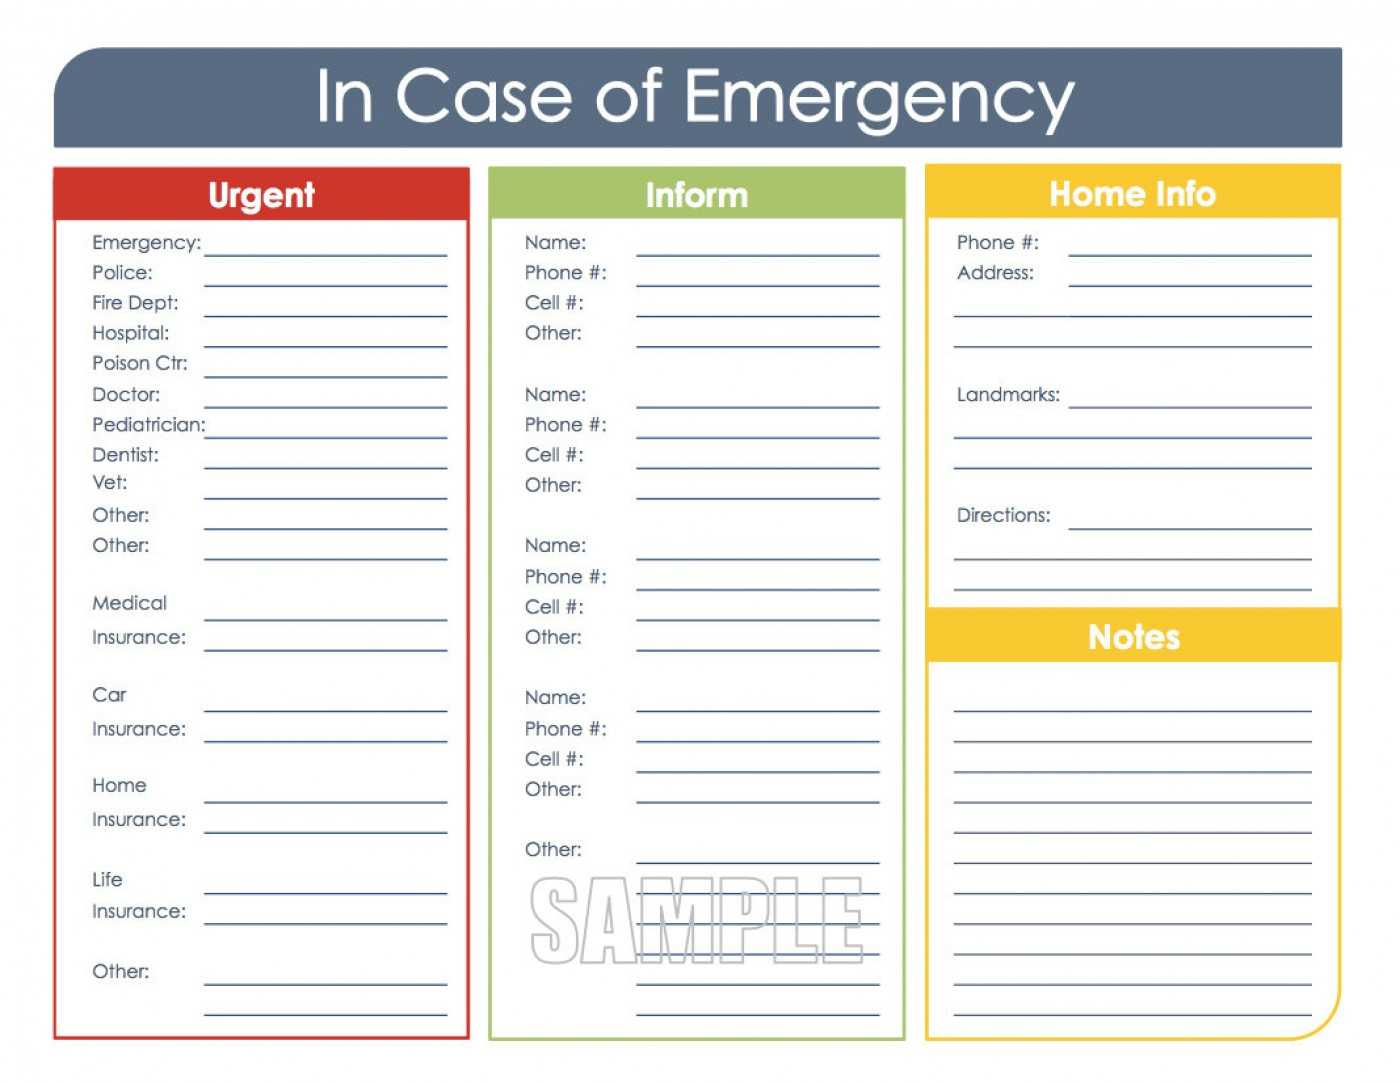 036 Emergency Contact Card Template In In Case Of Emergency Card Template